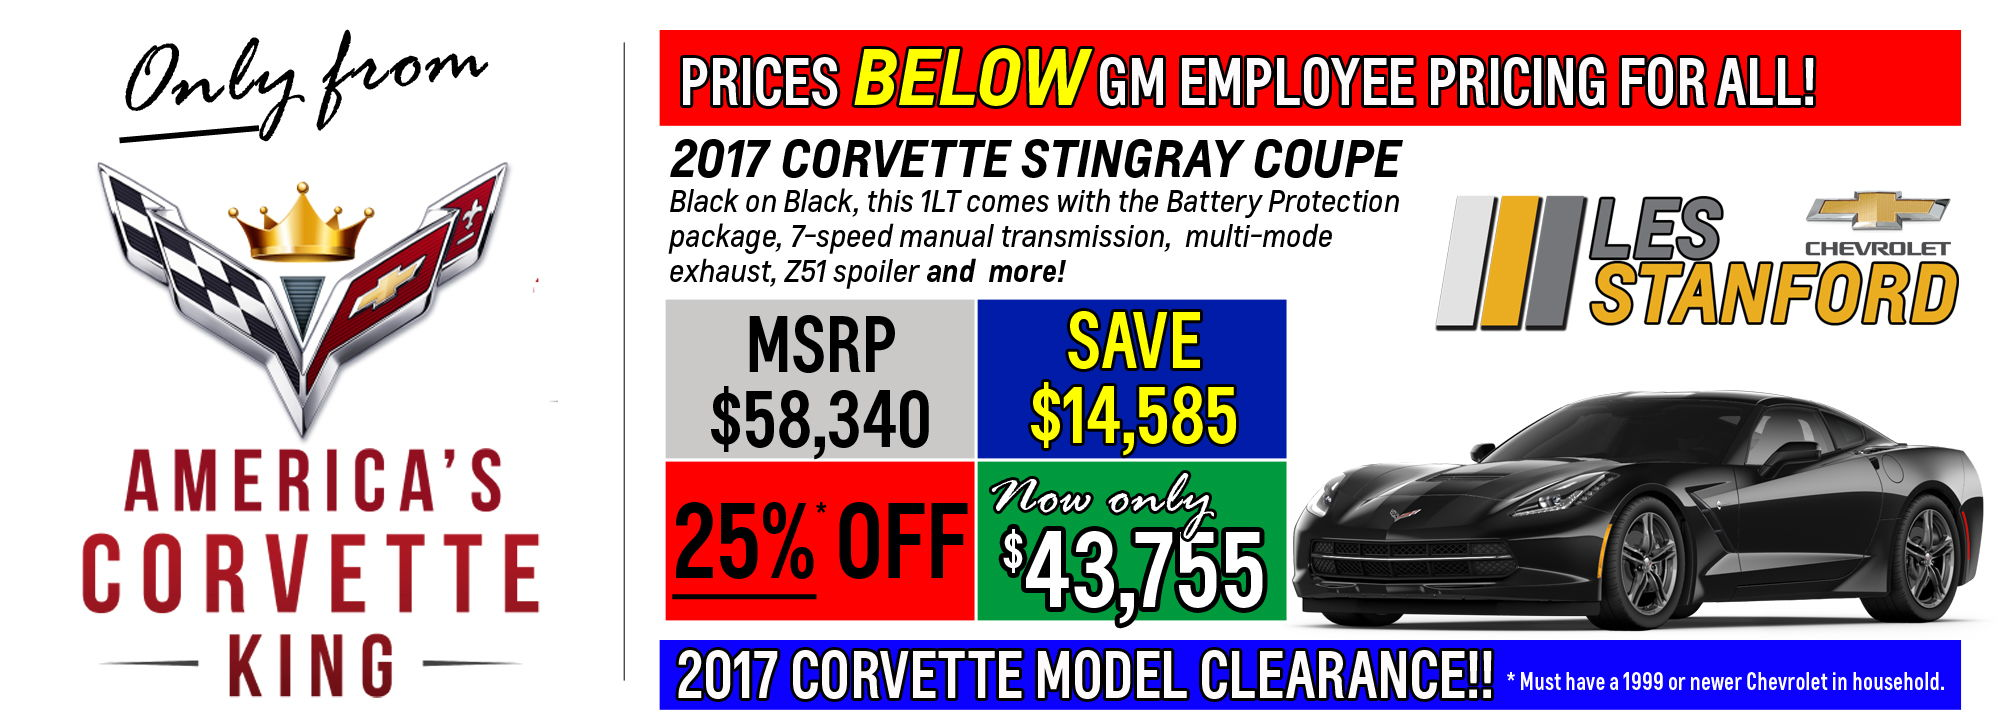 Motorcity Prices Available Nationwide Corvetteking Com 25